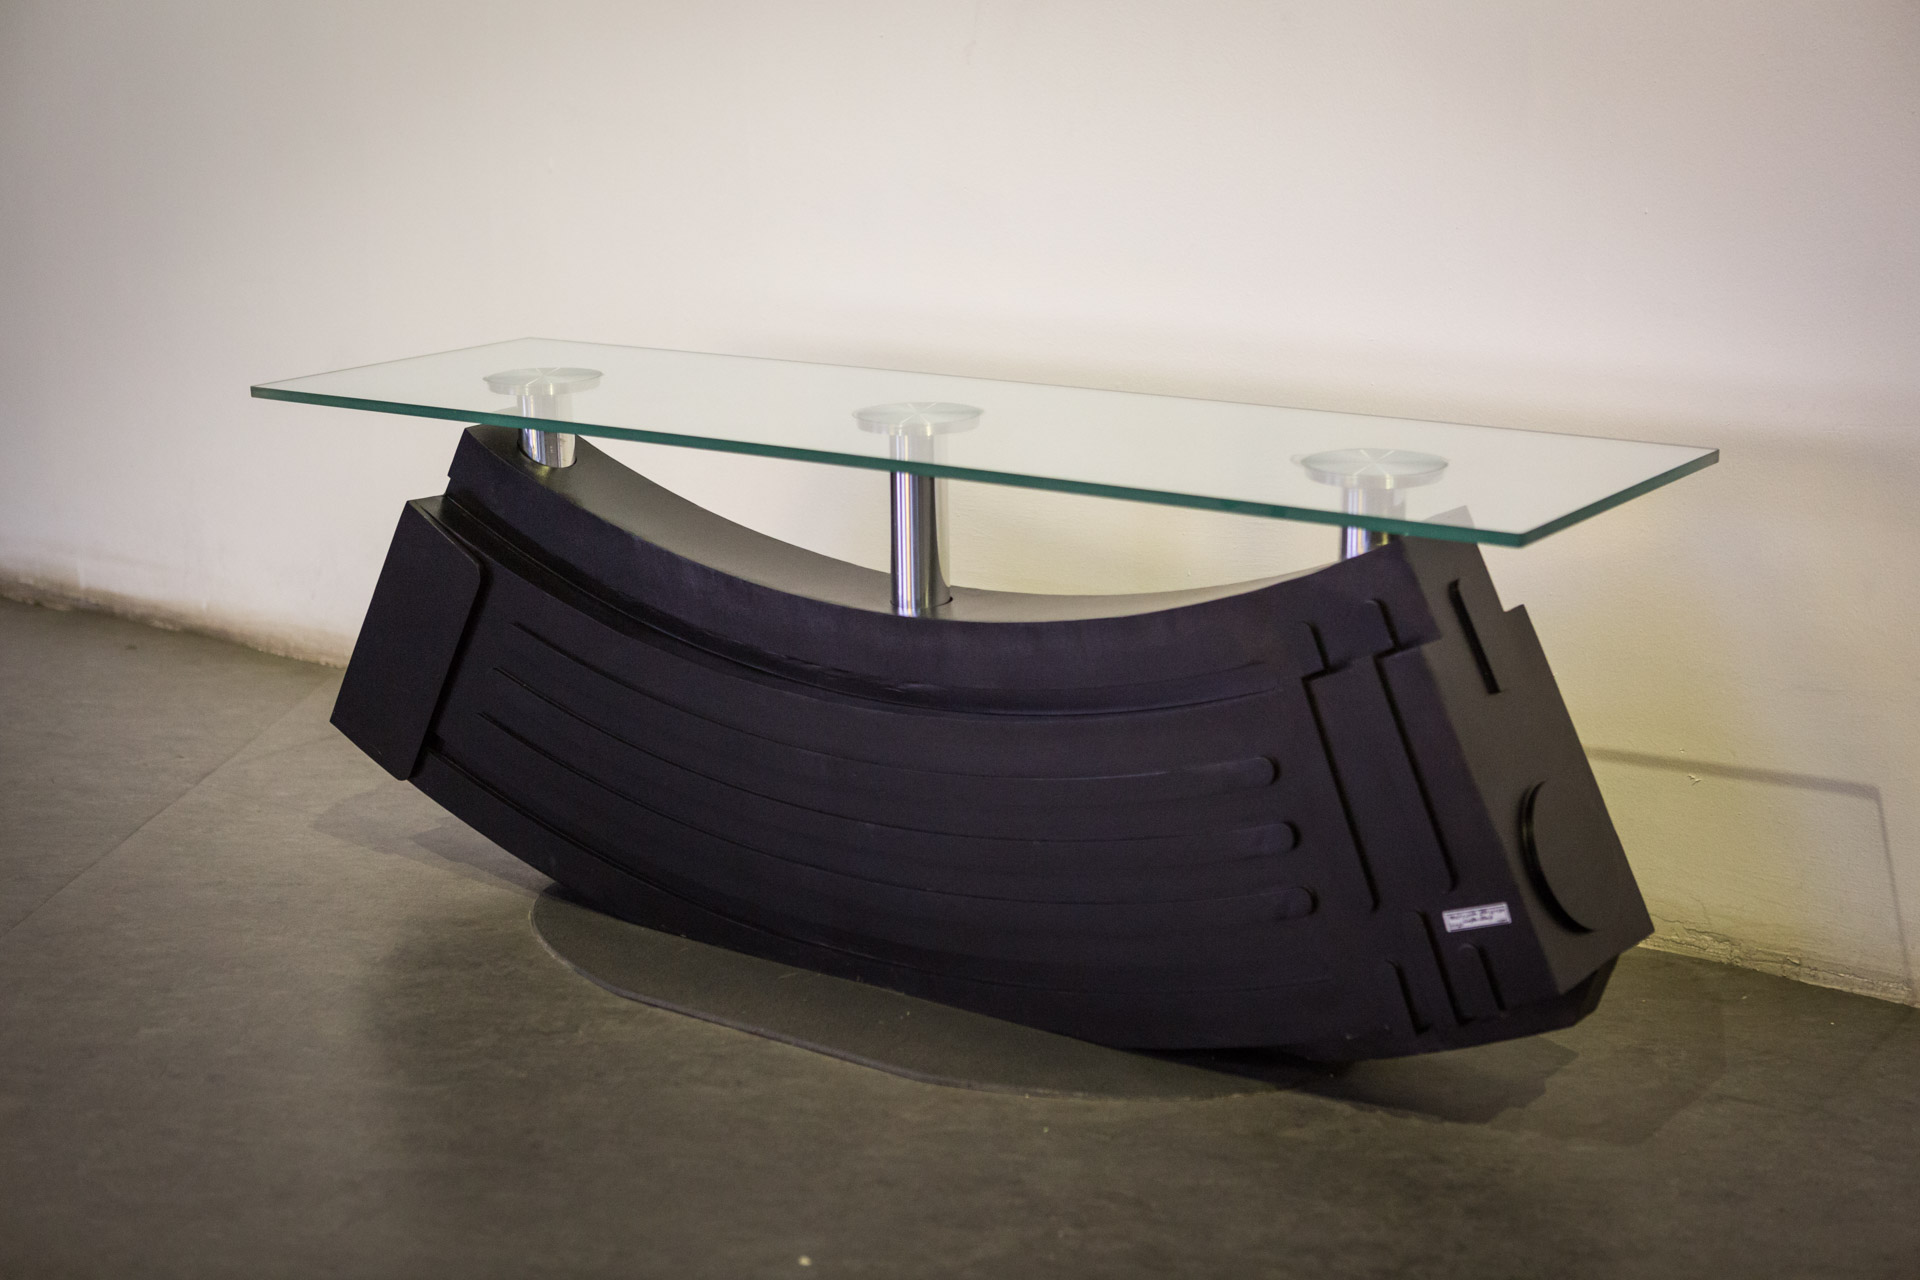 The Iranian government spent a lot of money to hire interior designers and museum artist for the country's major touristic landmark in the capital. Here, a table was designed in the shape of an AK-47 rifle magazine.